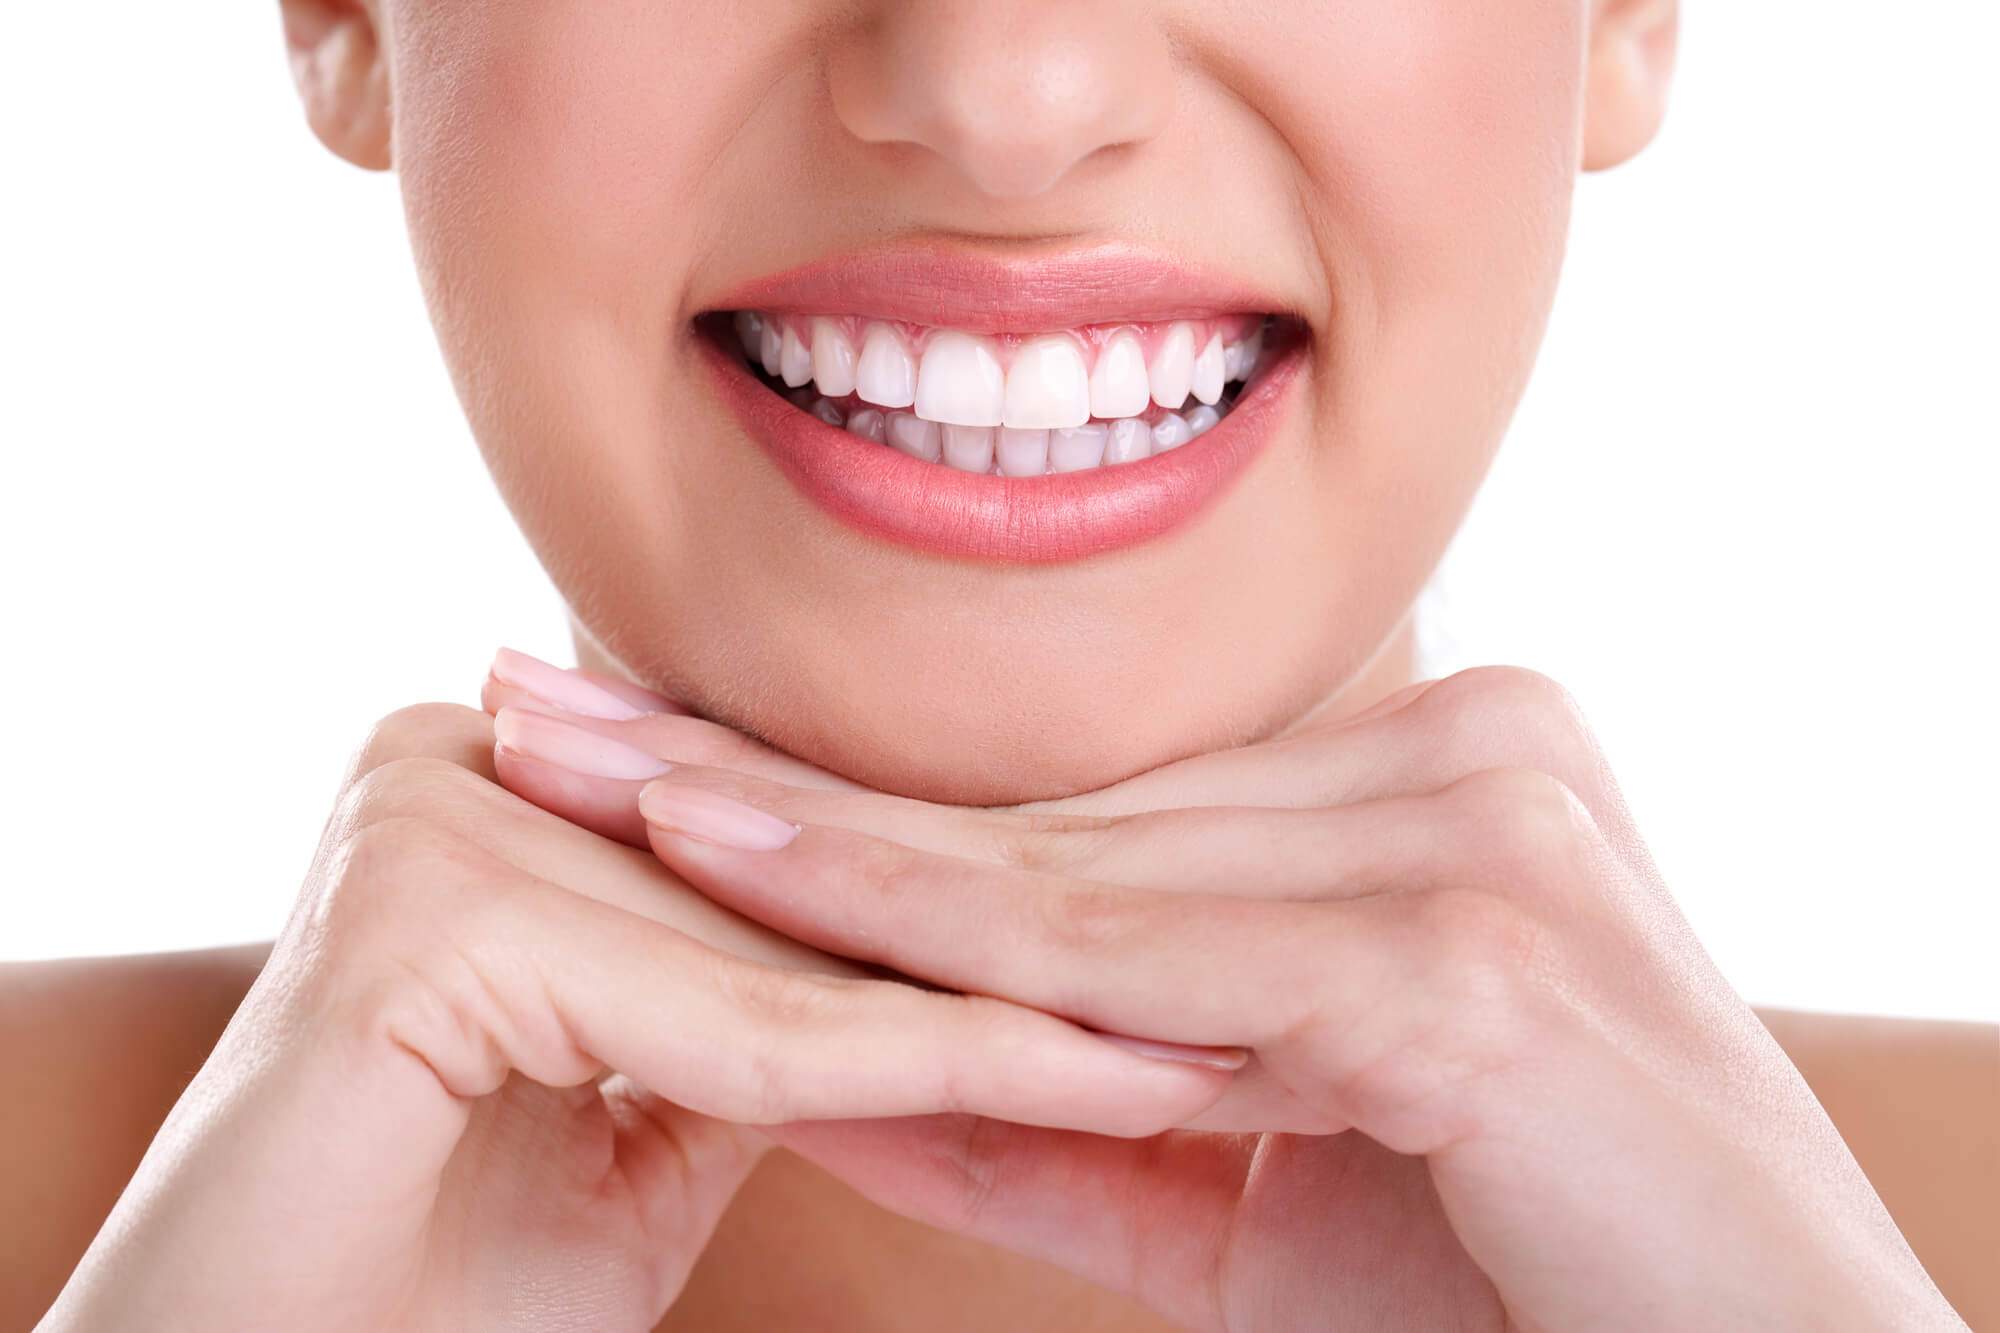 where is the best braces tamiami?